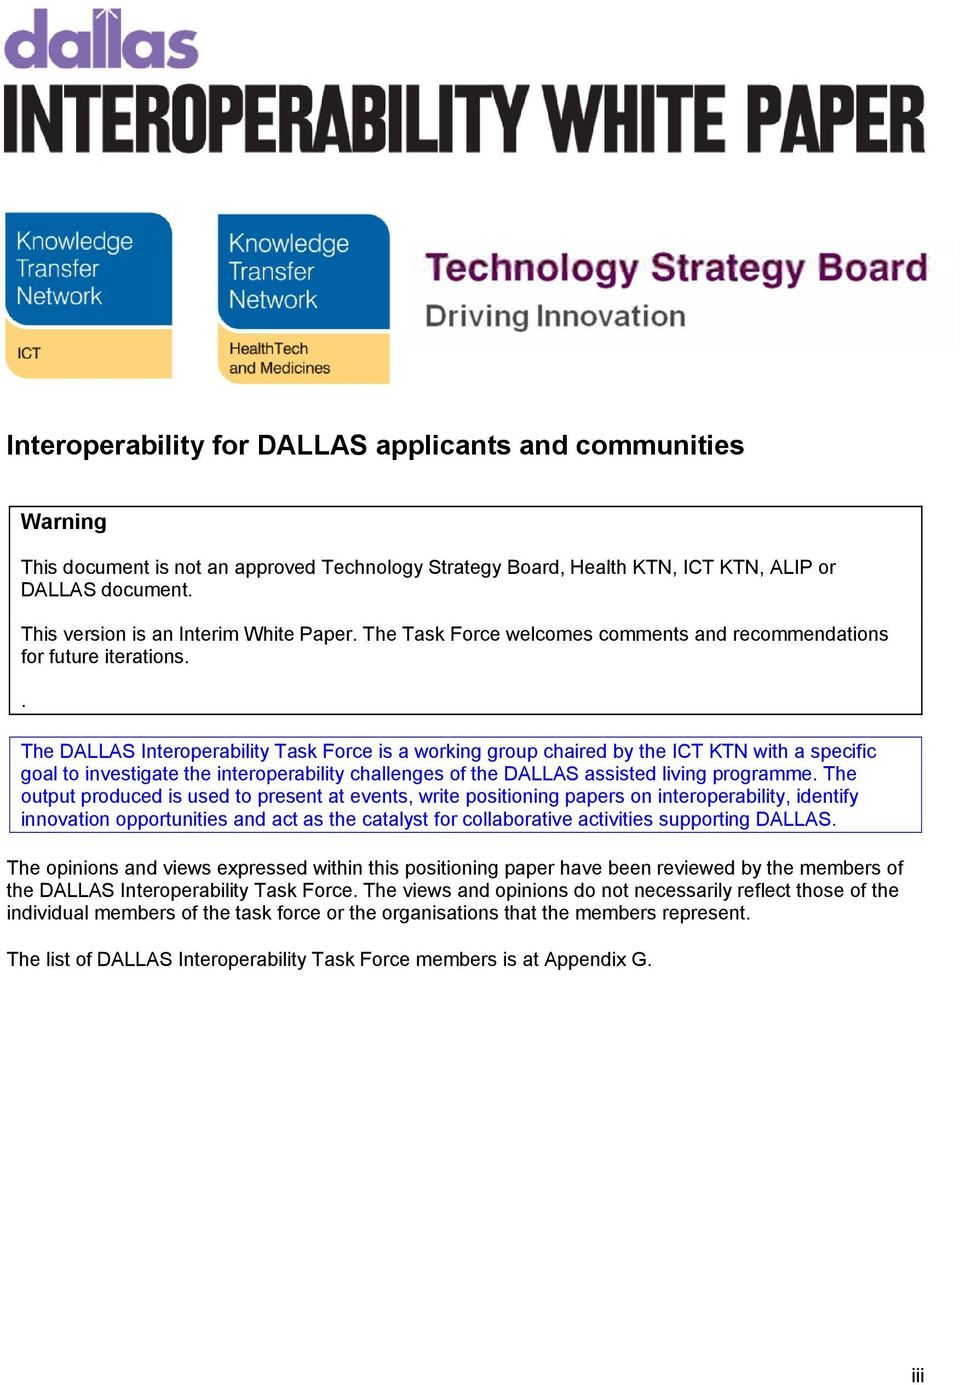 . The DALLAS Interperability Task Frce is a wrking grup chaired by the ICT KTN with a specific gal t investigate the interperability challenges f the DALLAS assisted living prgramme.